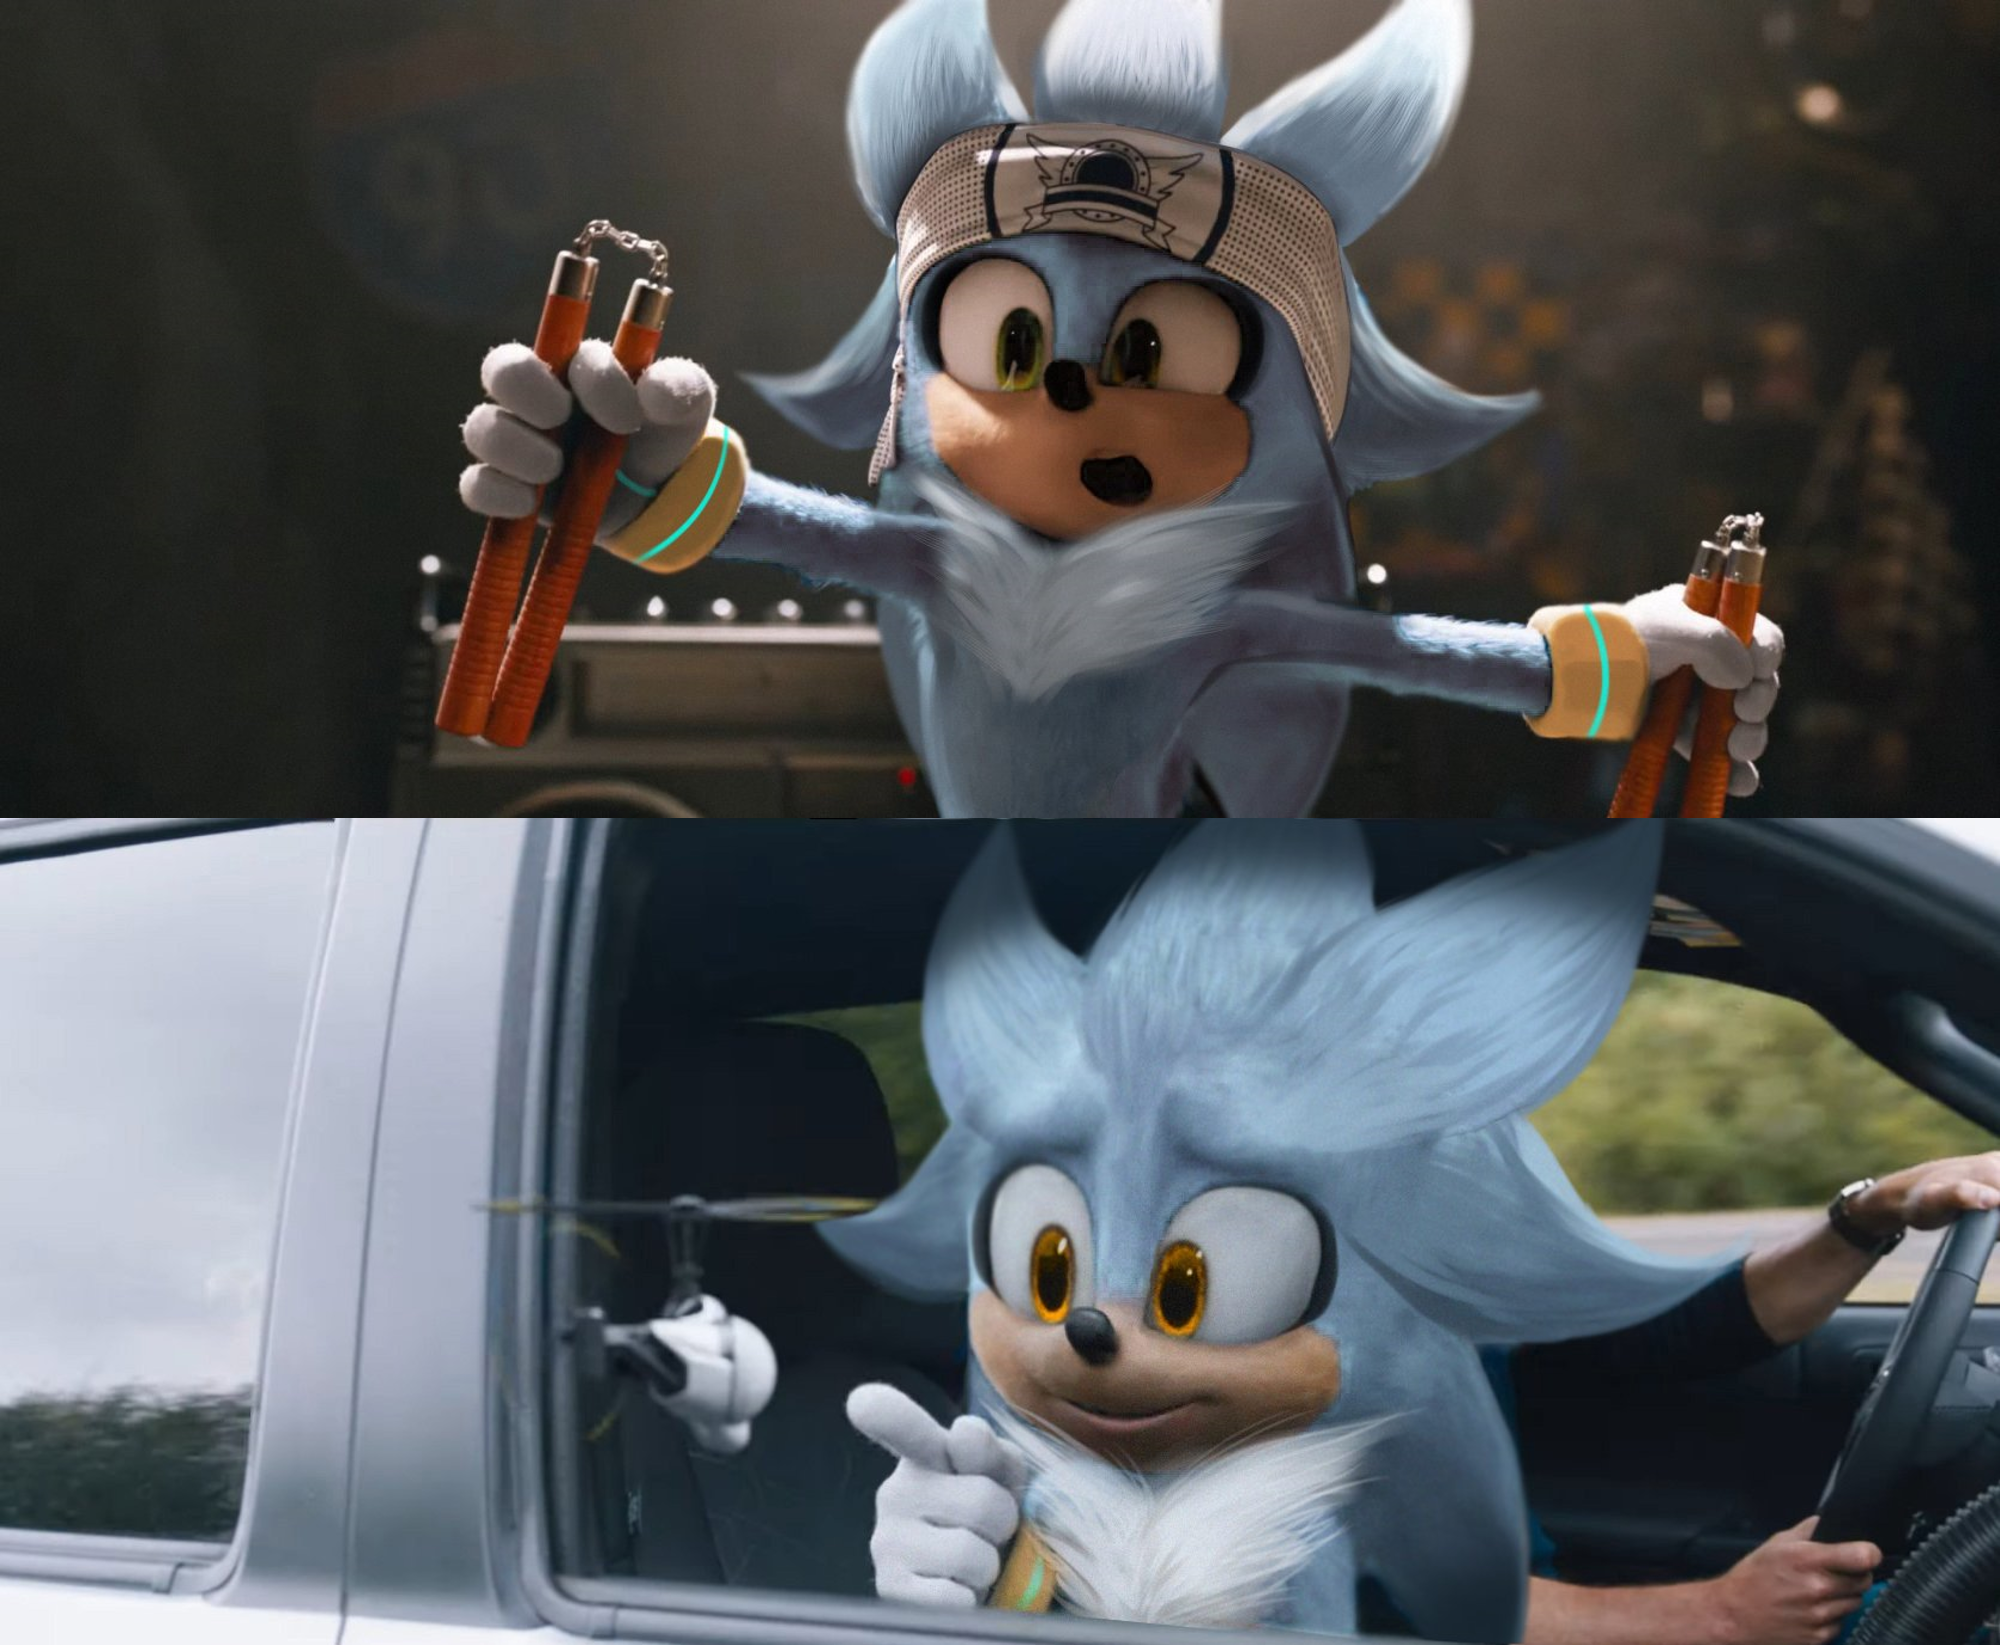 It S No Use Sonic The Hedgehog 2020 Film Know Your Meme